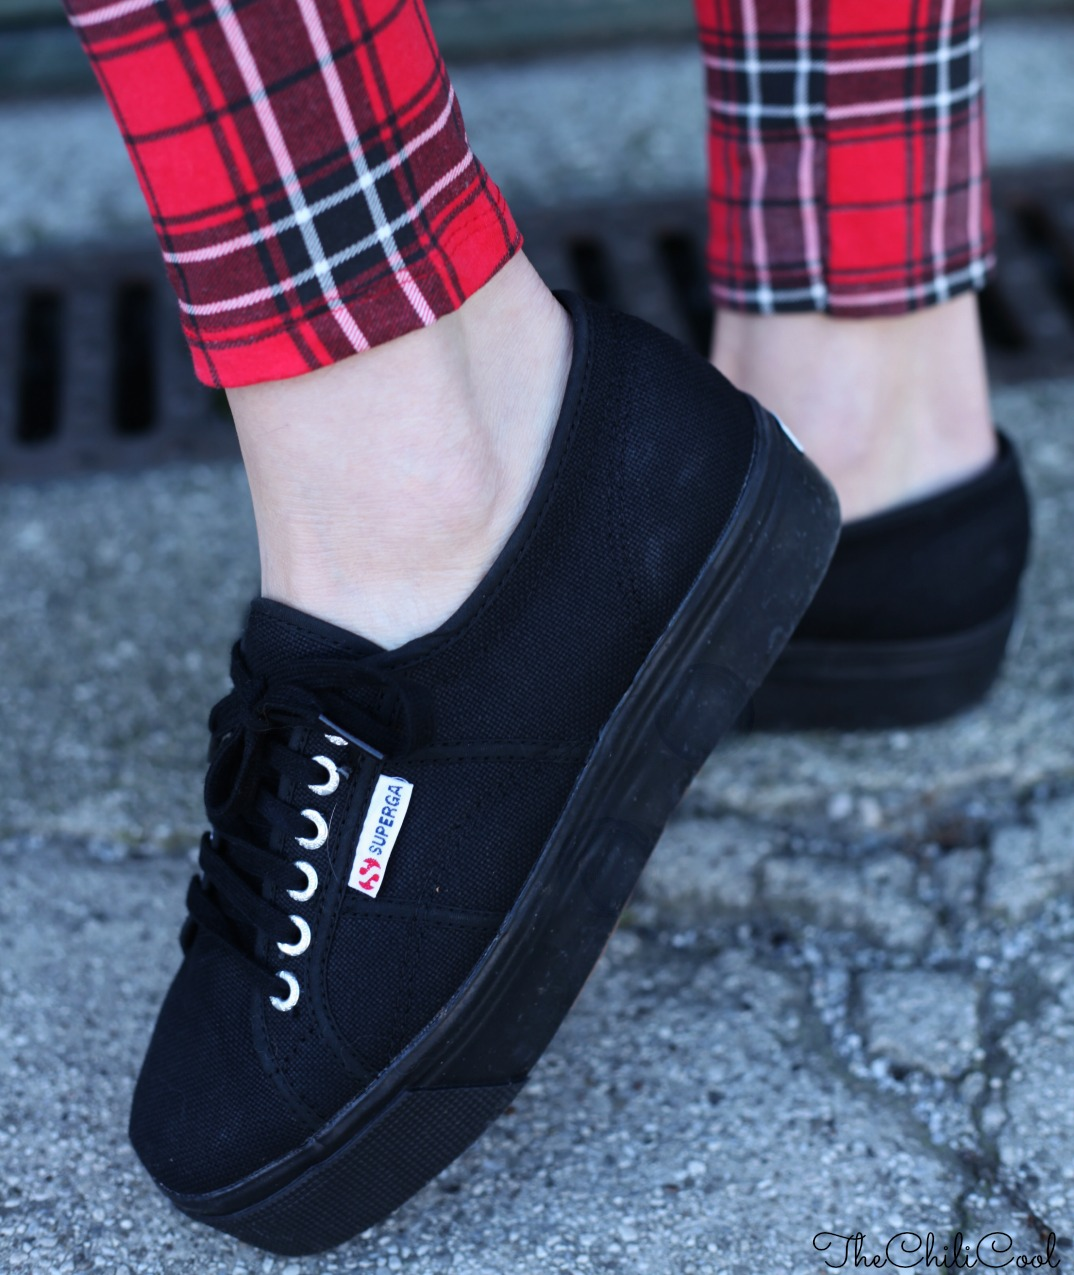 SUPERGABIZZARIA 05 Tartan & Superga flatforms